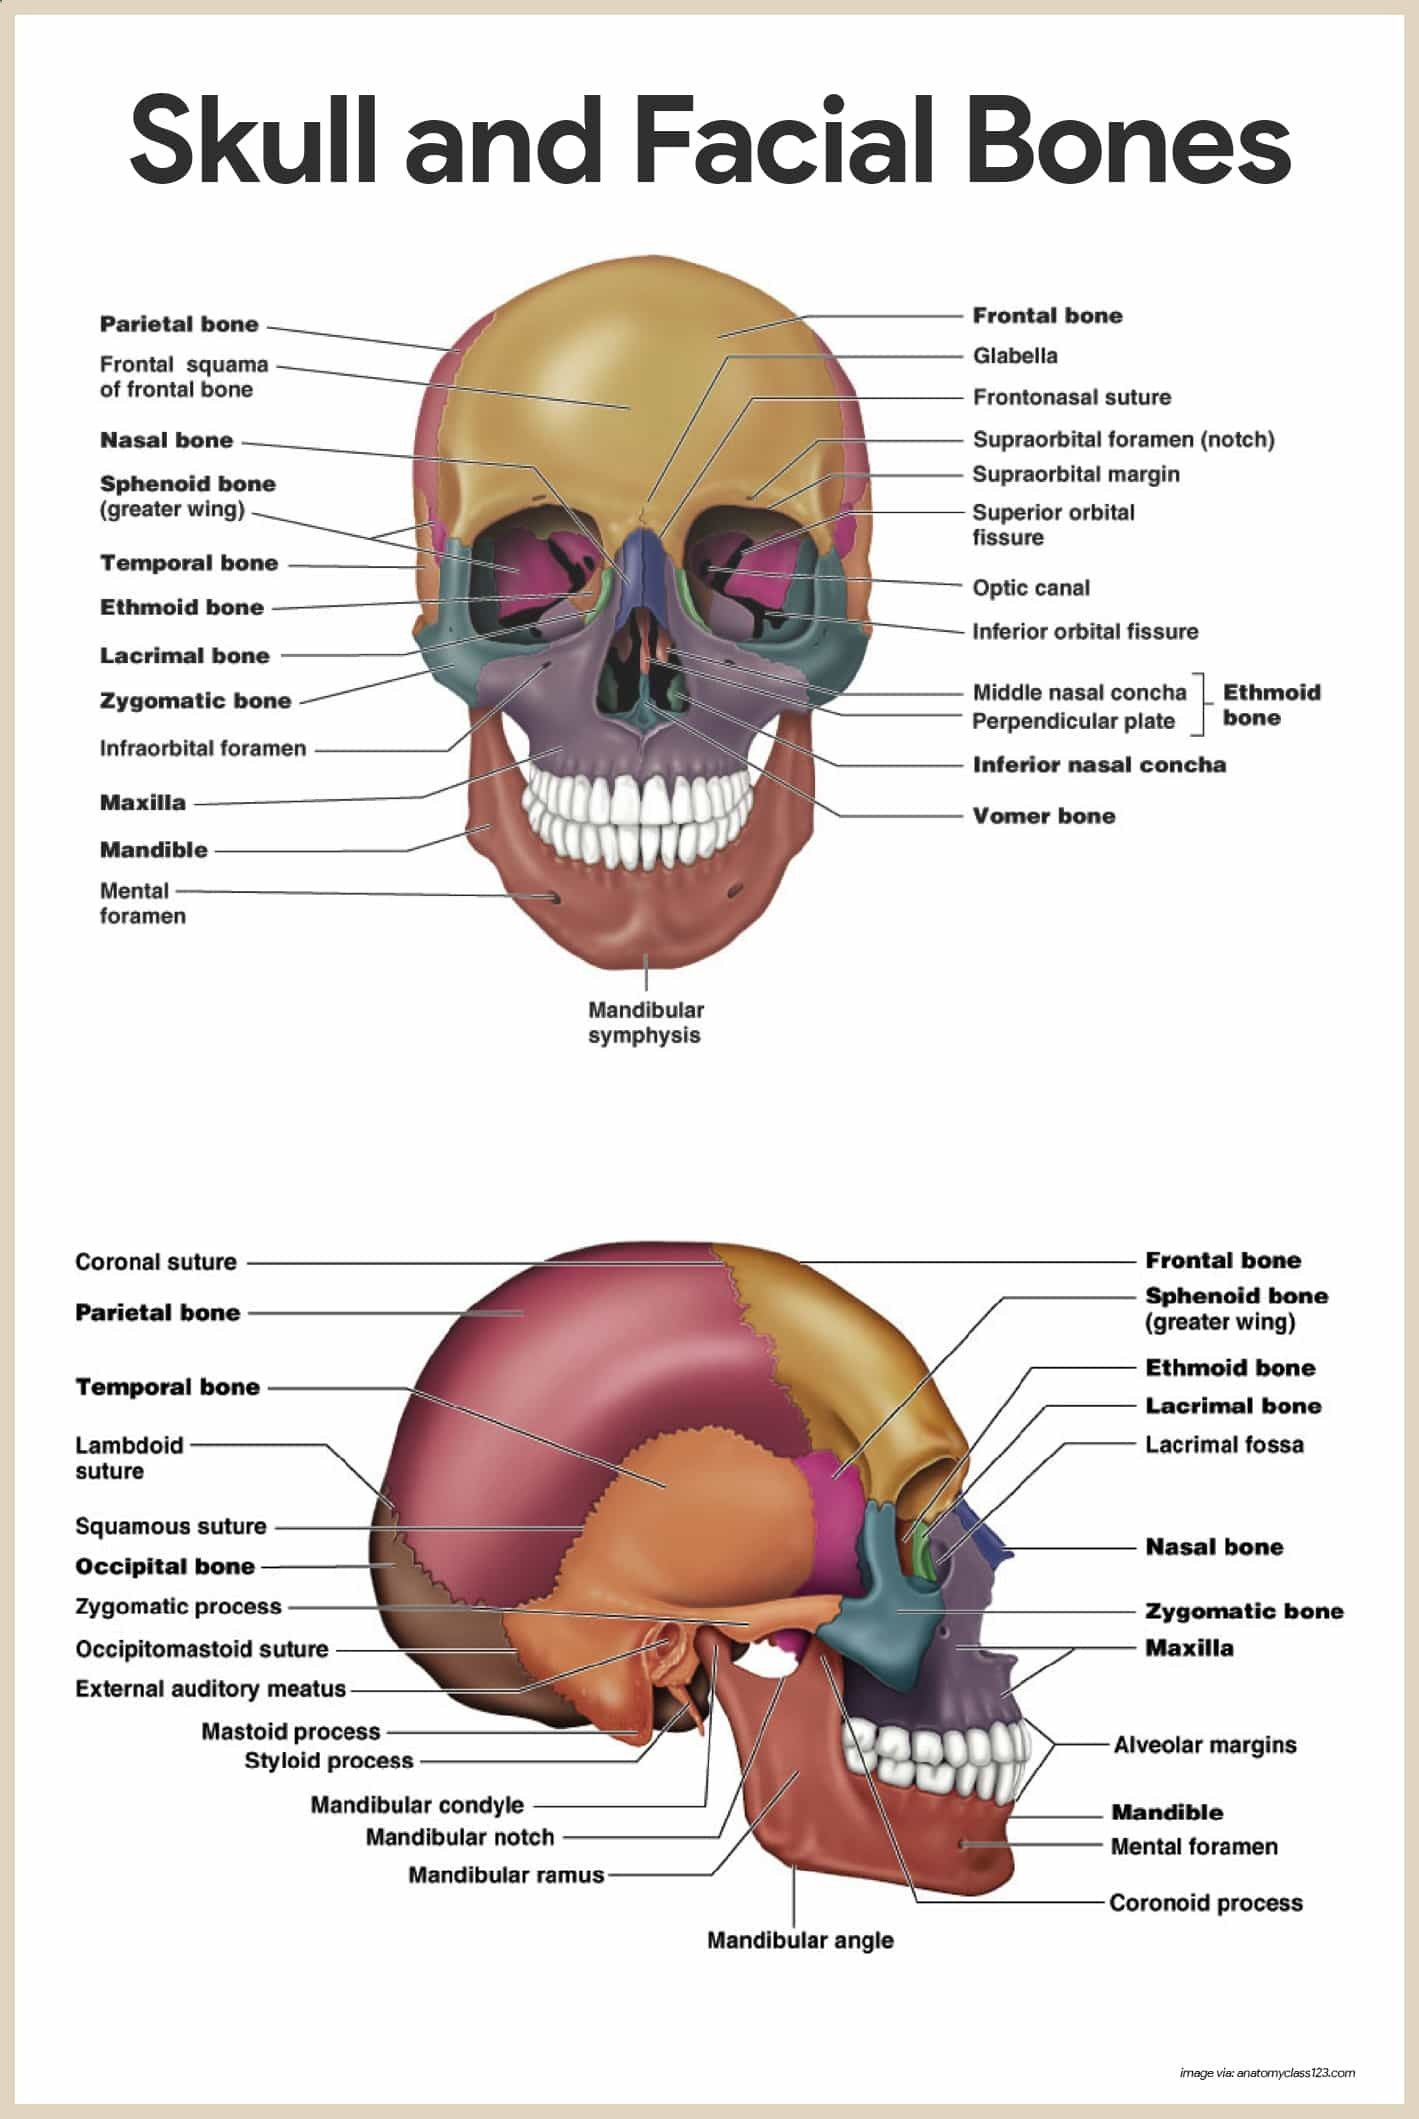 Skull And Facial Bones Skeletal System Anatomy And Physiology For Nurses Nurseslabs